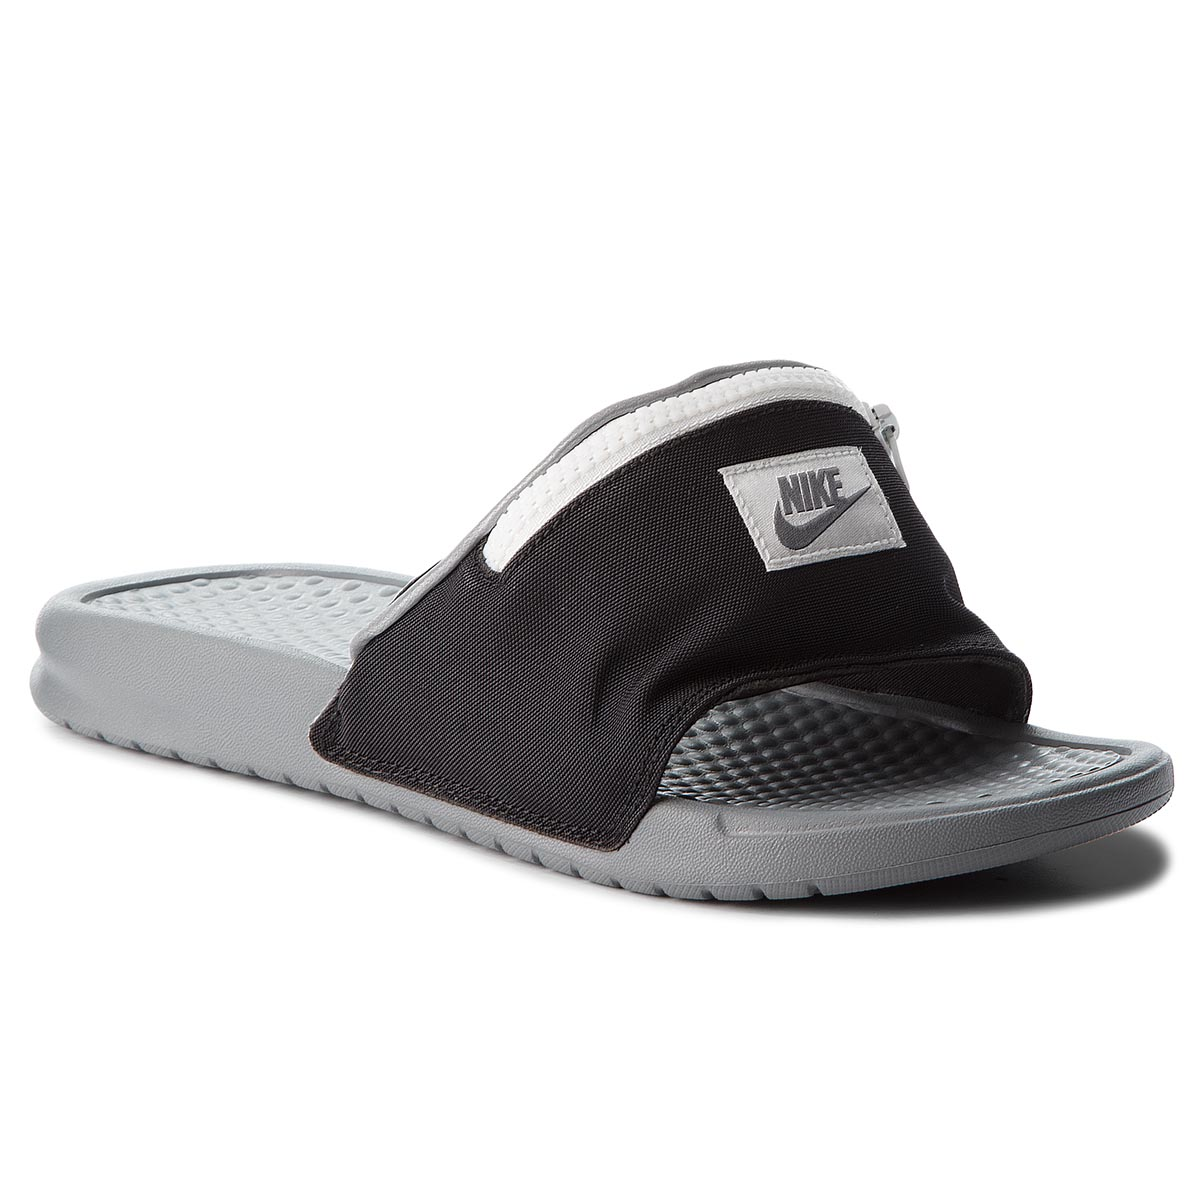 Șlapi NIKE - Benassi Jdi Fanny AO1037 001 Black/Cool Grey/Summit White